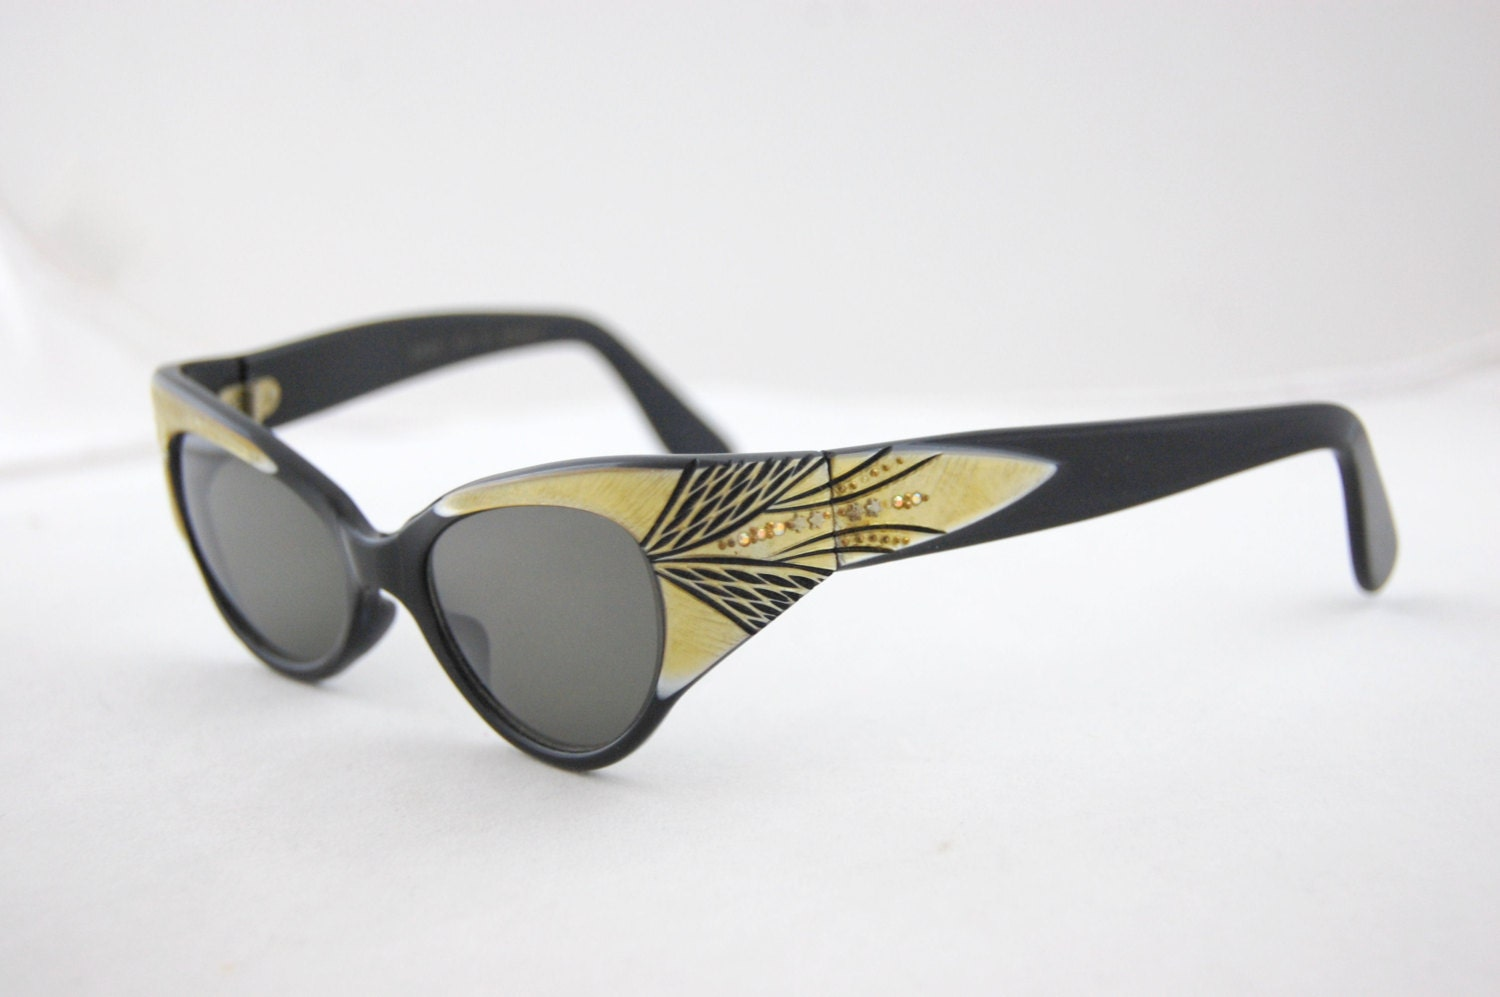 Glasses Frames Black And Gold : 50s Black and Gold Cateye Eyeglasses by FrocksnFrillsVintage